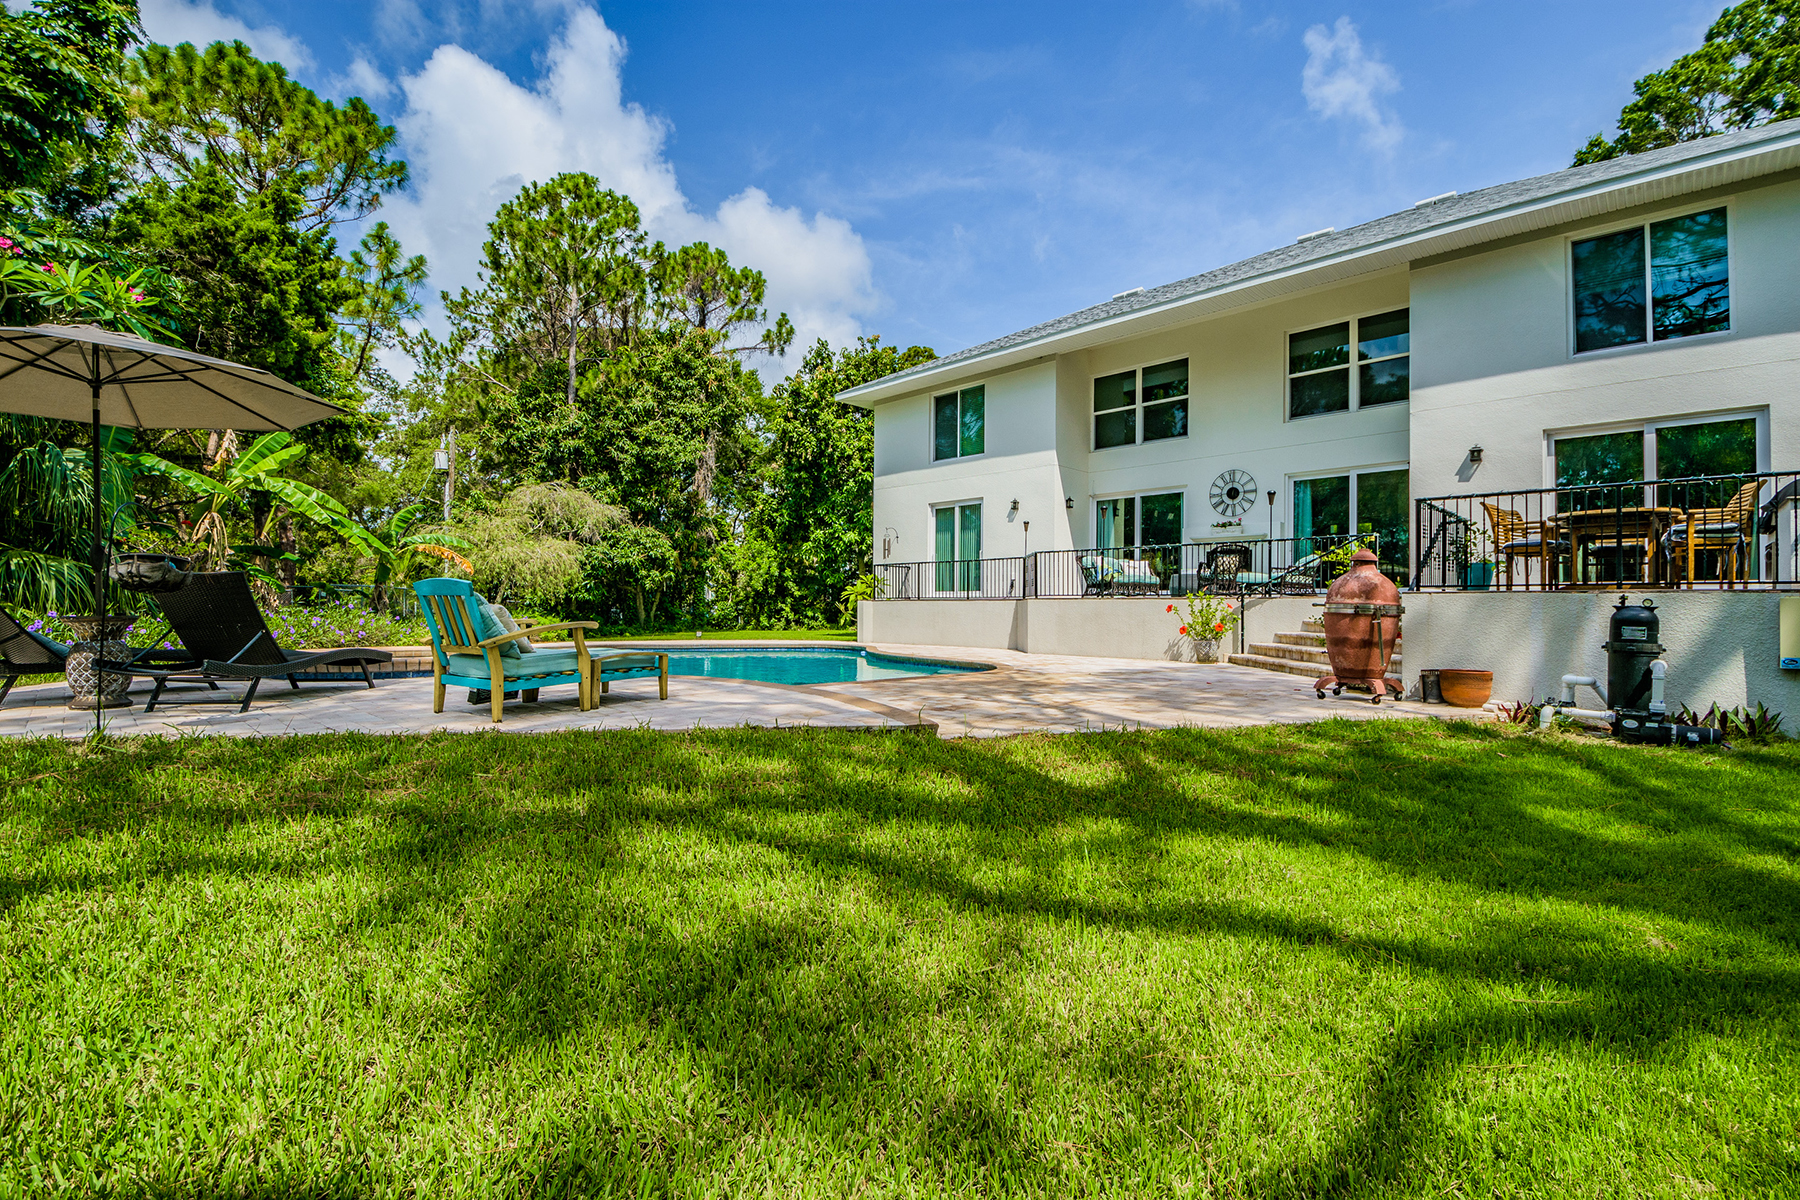 Maison unifamiliale pour l Vente à PINELLAS POINT 746 Sabal Ct S, St. Petersburg, Florida 33705 États-Unis